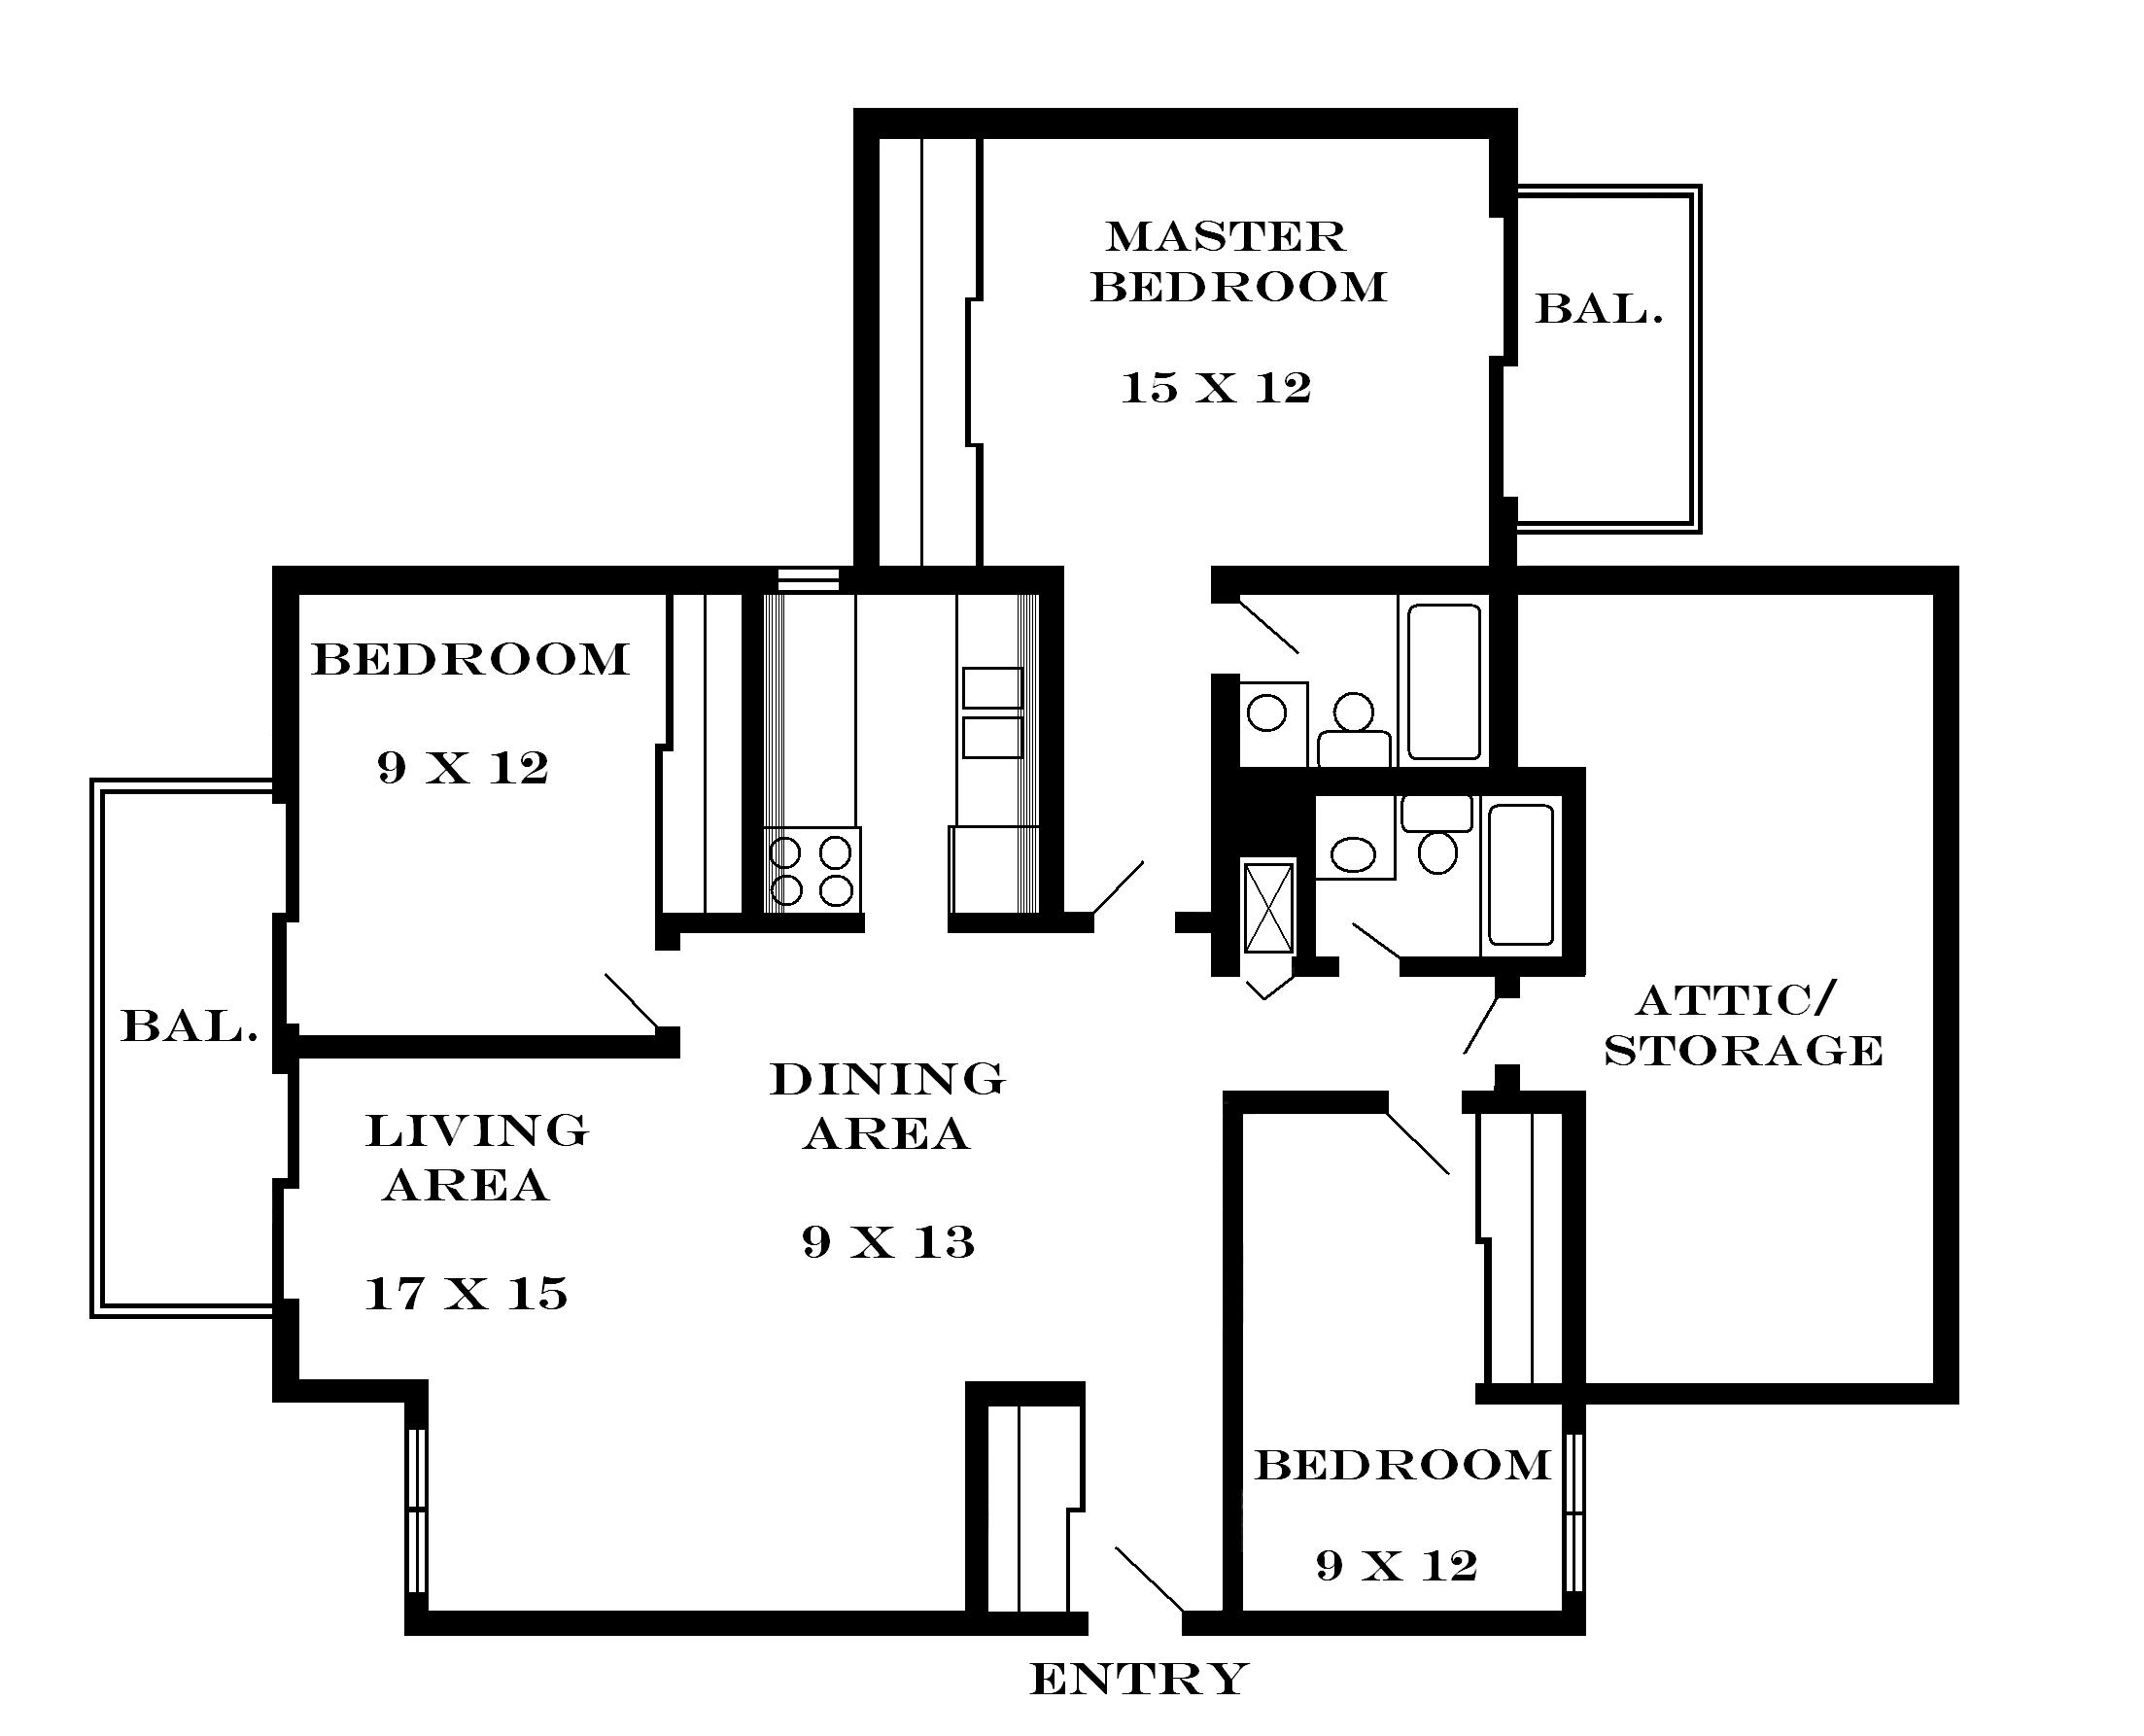 Wiring Diagram 1 Bedroom Apartment Not Lossing Diagrams Electrical 3 Flat Library Rh 88 Skriptoase De Plans House